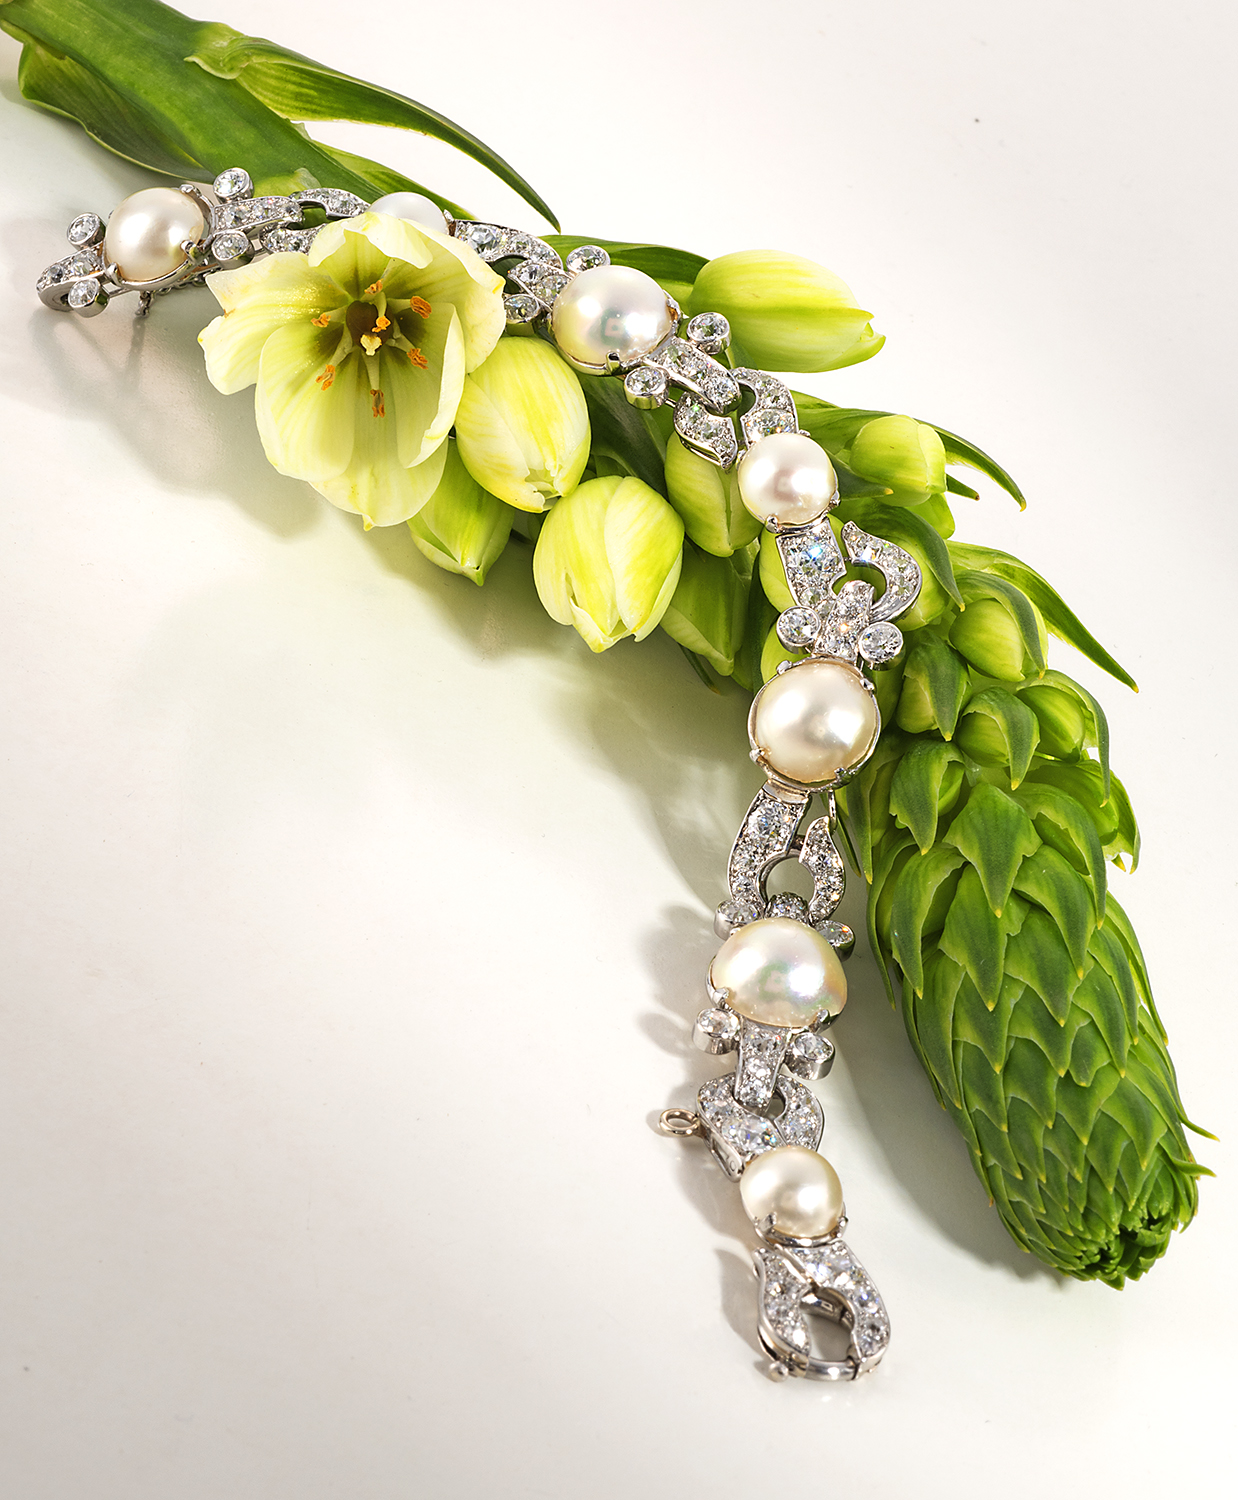 Beautiful vintage diamond and pearl bracelet arranged over a flower bud with delicate white flowers and green buds.